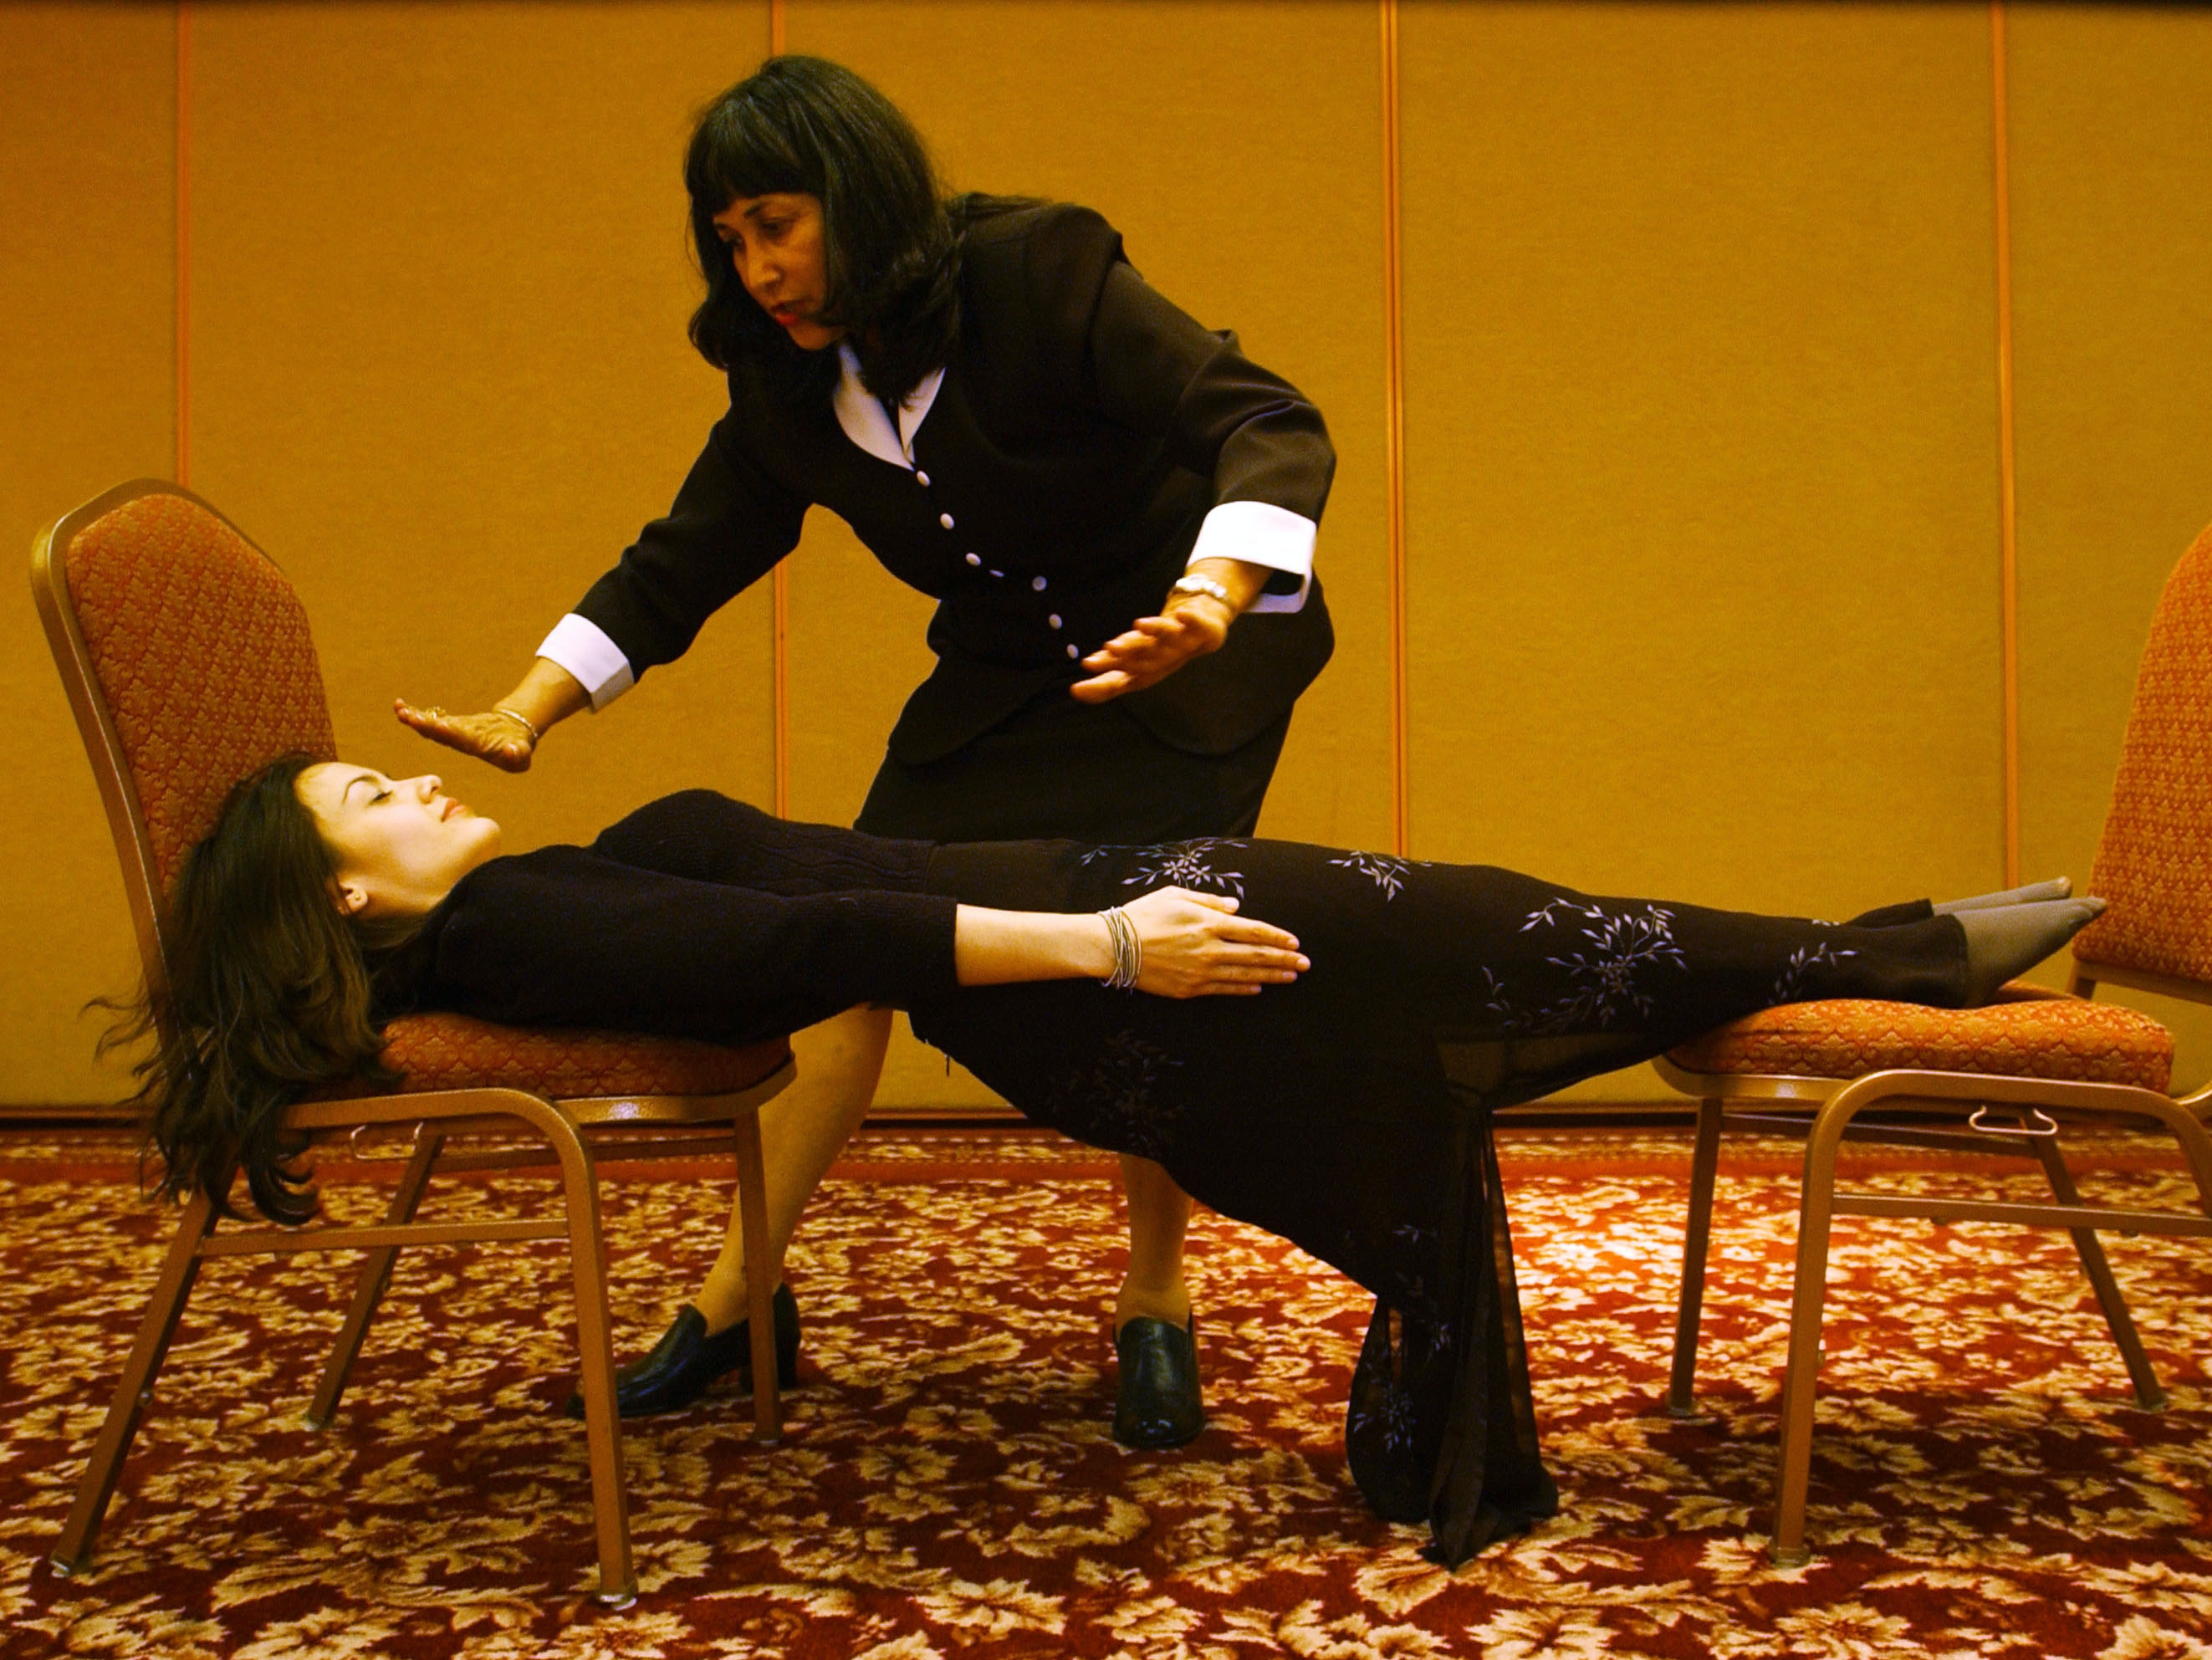 392233 03: Hypnotherapist and actress Cathy Kay is stretched between chairs after becoming rigid as a board under the hypnotic suggestion of Shelley Stockwell, president and founder of the International Hypnosis Federation & Creativity Institute, at the International Hypnosis Federation''s Mind, Body, Spirit, Fun Conference, July 20, 2001 in Long Beach, CA. (Photo by David McNew/Getty Images)